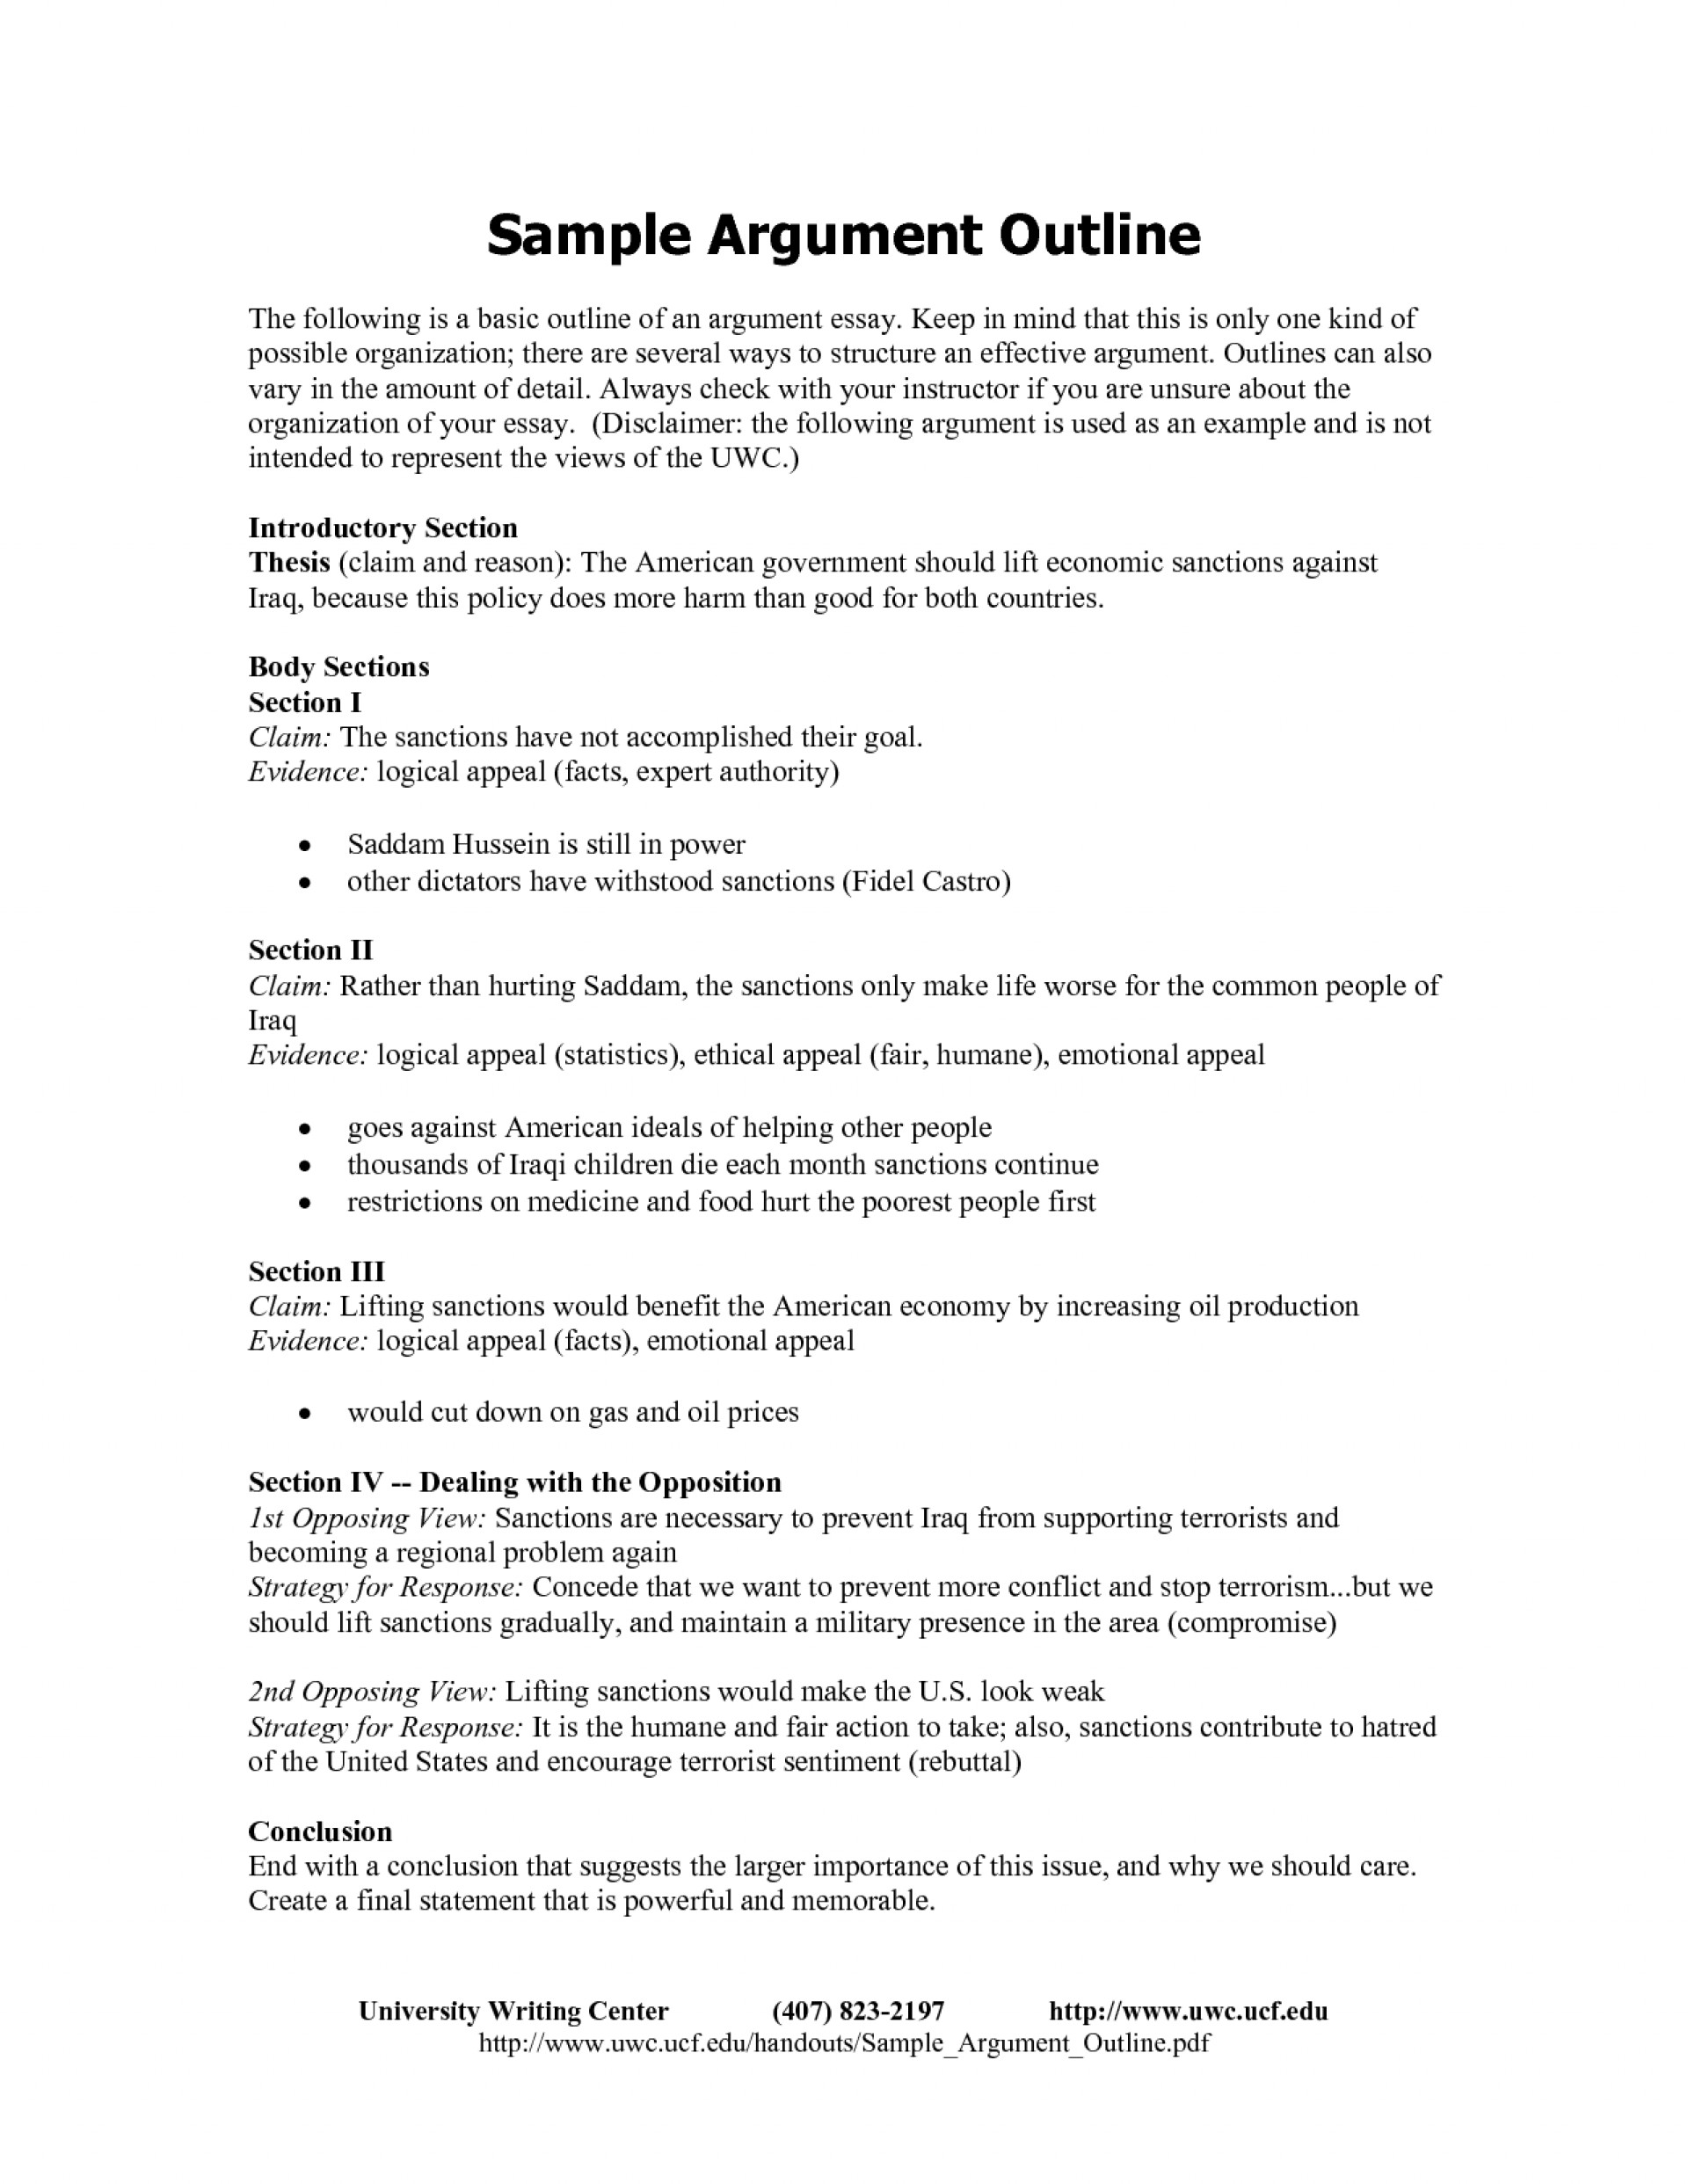 007 Example Argumentativey Outline Onneto Format For Ironviper Co How To Write An Step By Pdf Start Conclusion Thesis Statement Off Body Paragraph Ap Lang Introduction Argument Remarkable Essay Template Argumentative 1920